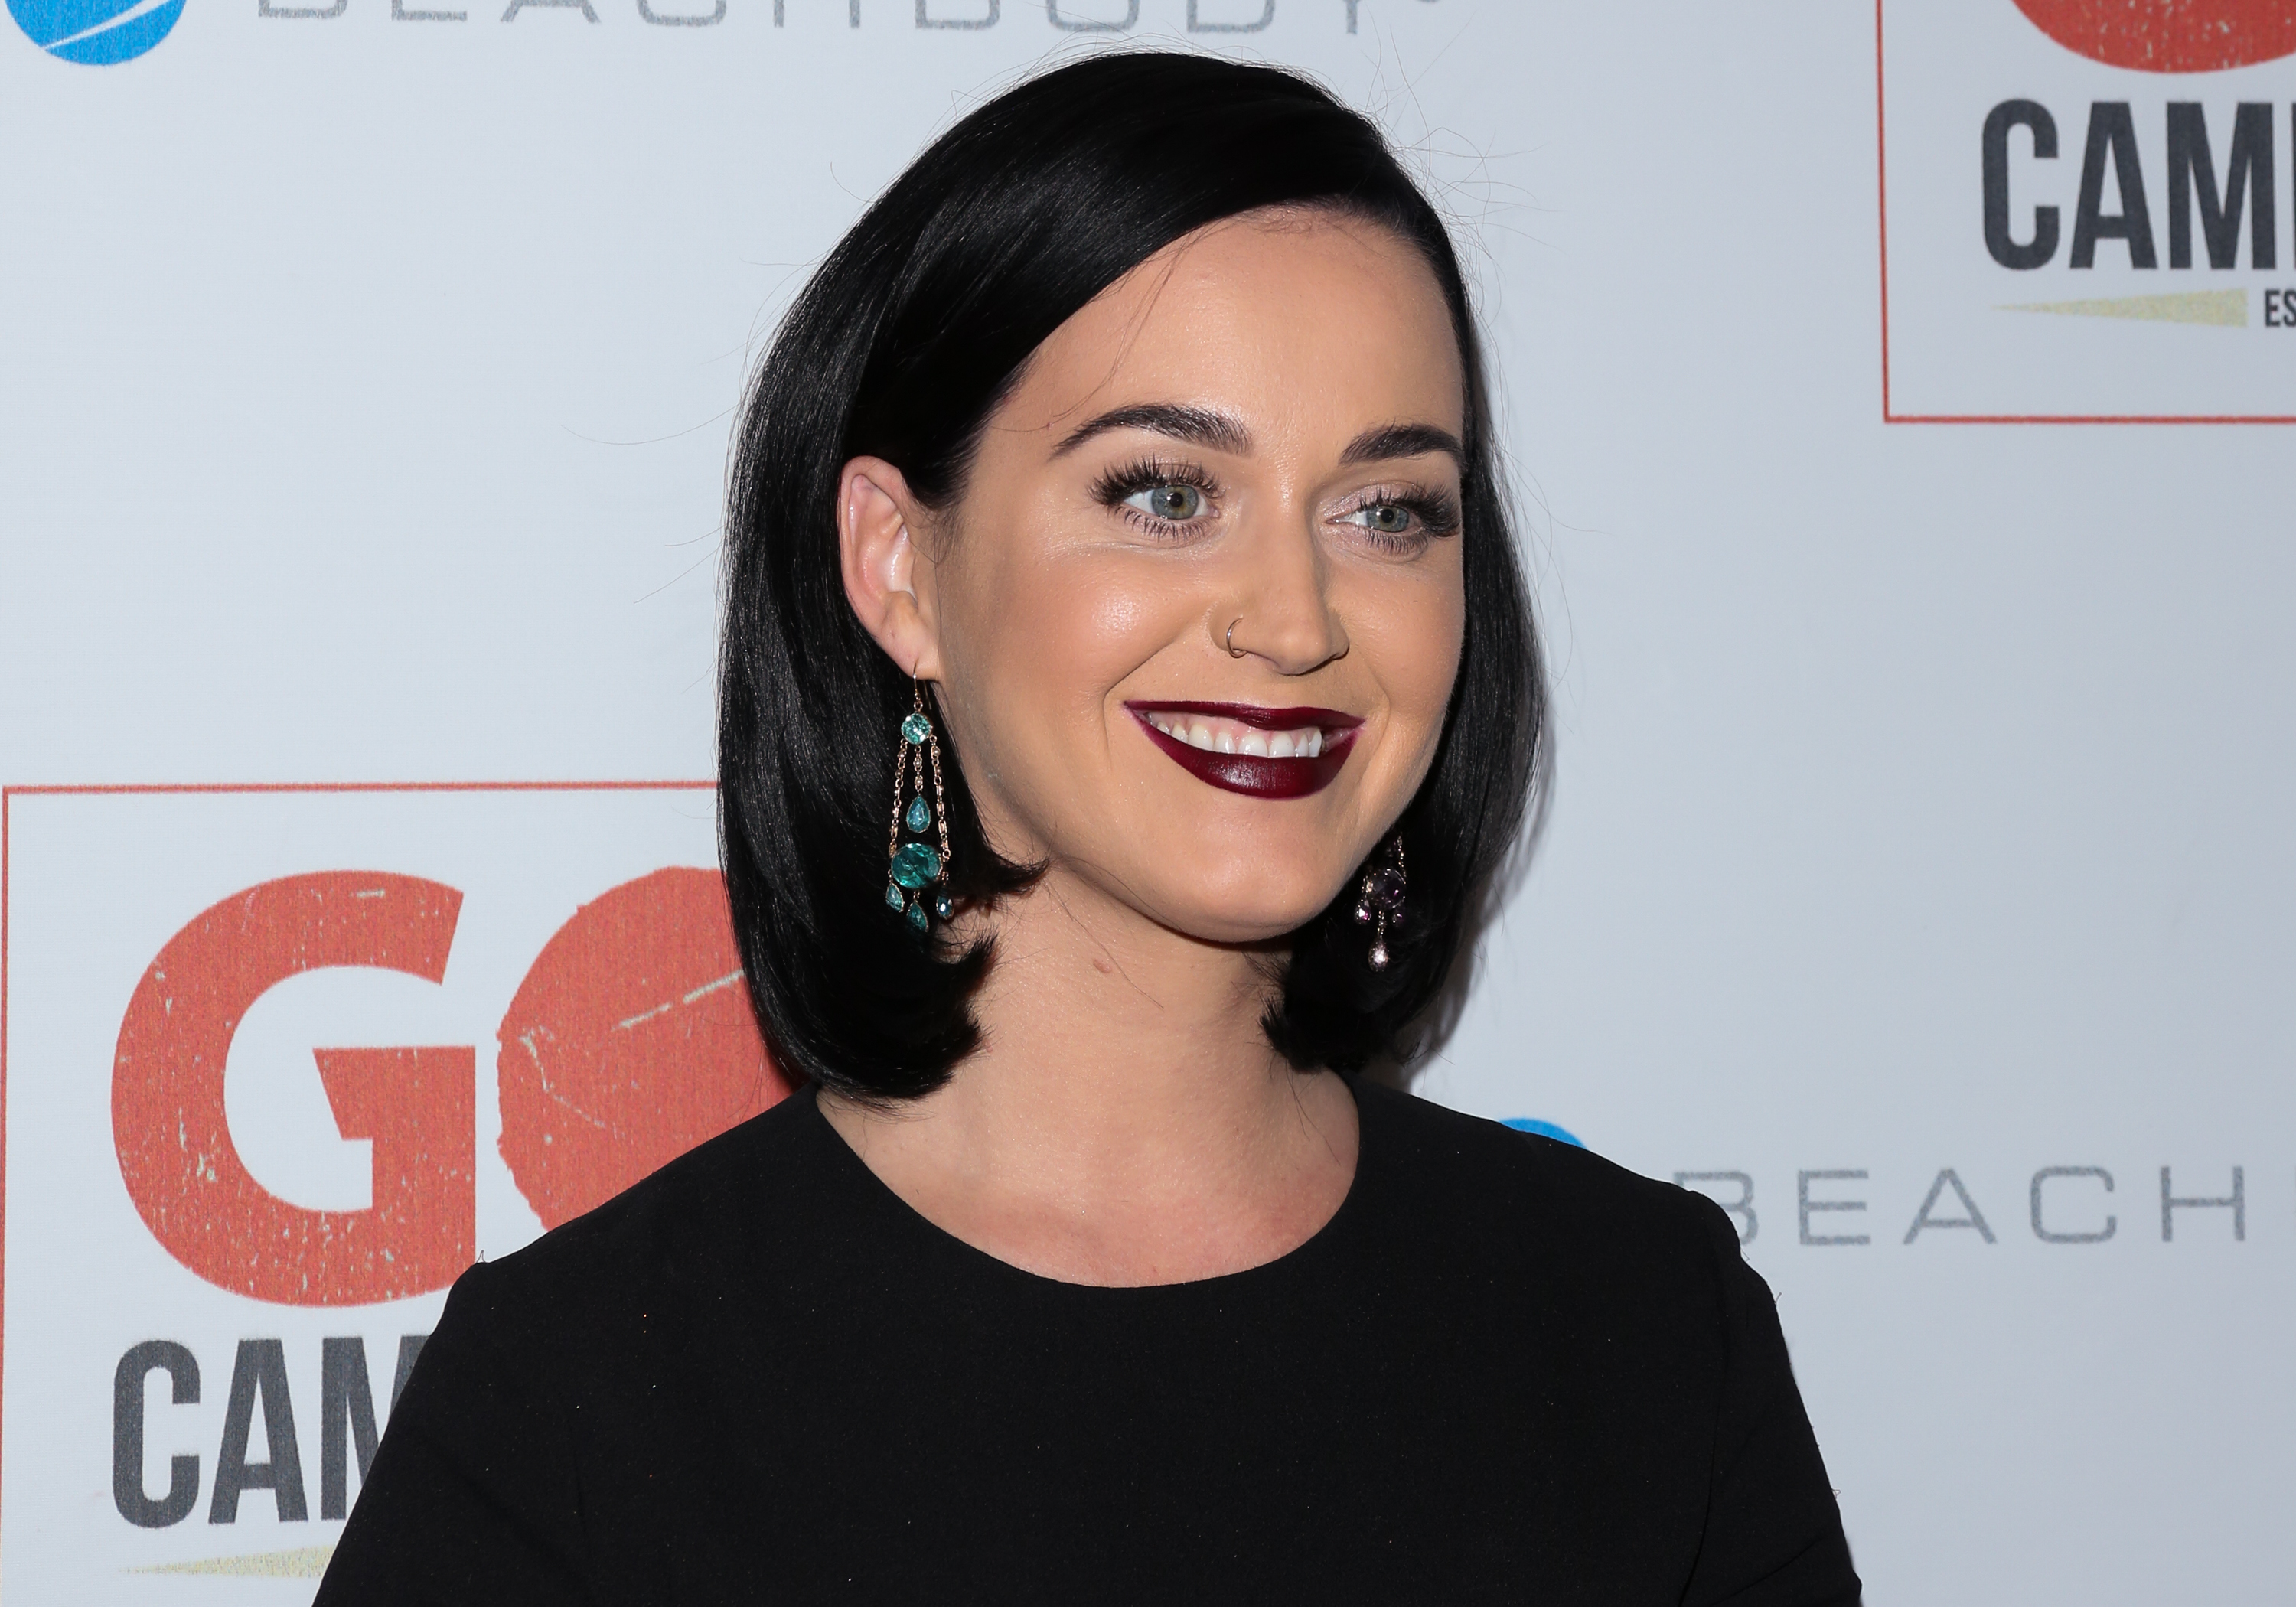 Singer Katy Perry attends the 8th Annual GO Campaign Gala at Montage Beverly Hills on Nov. 12, 2015 in Beverly Hills, California.